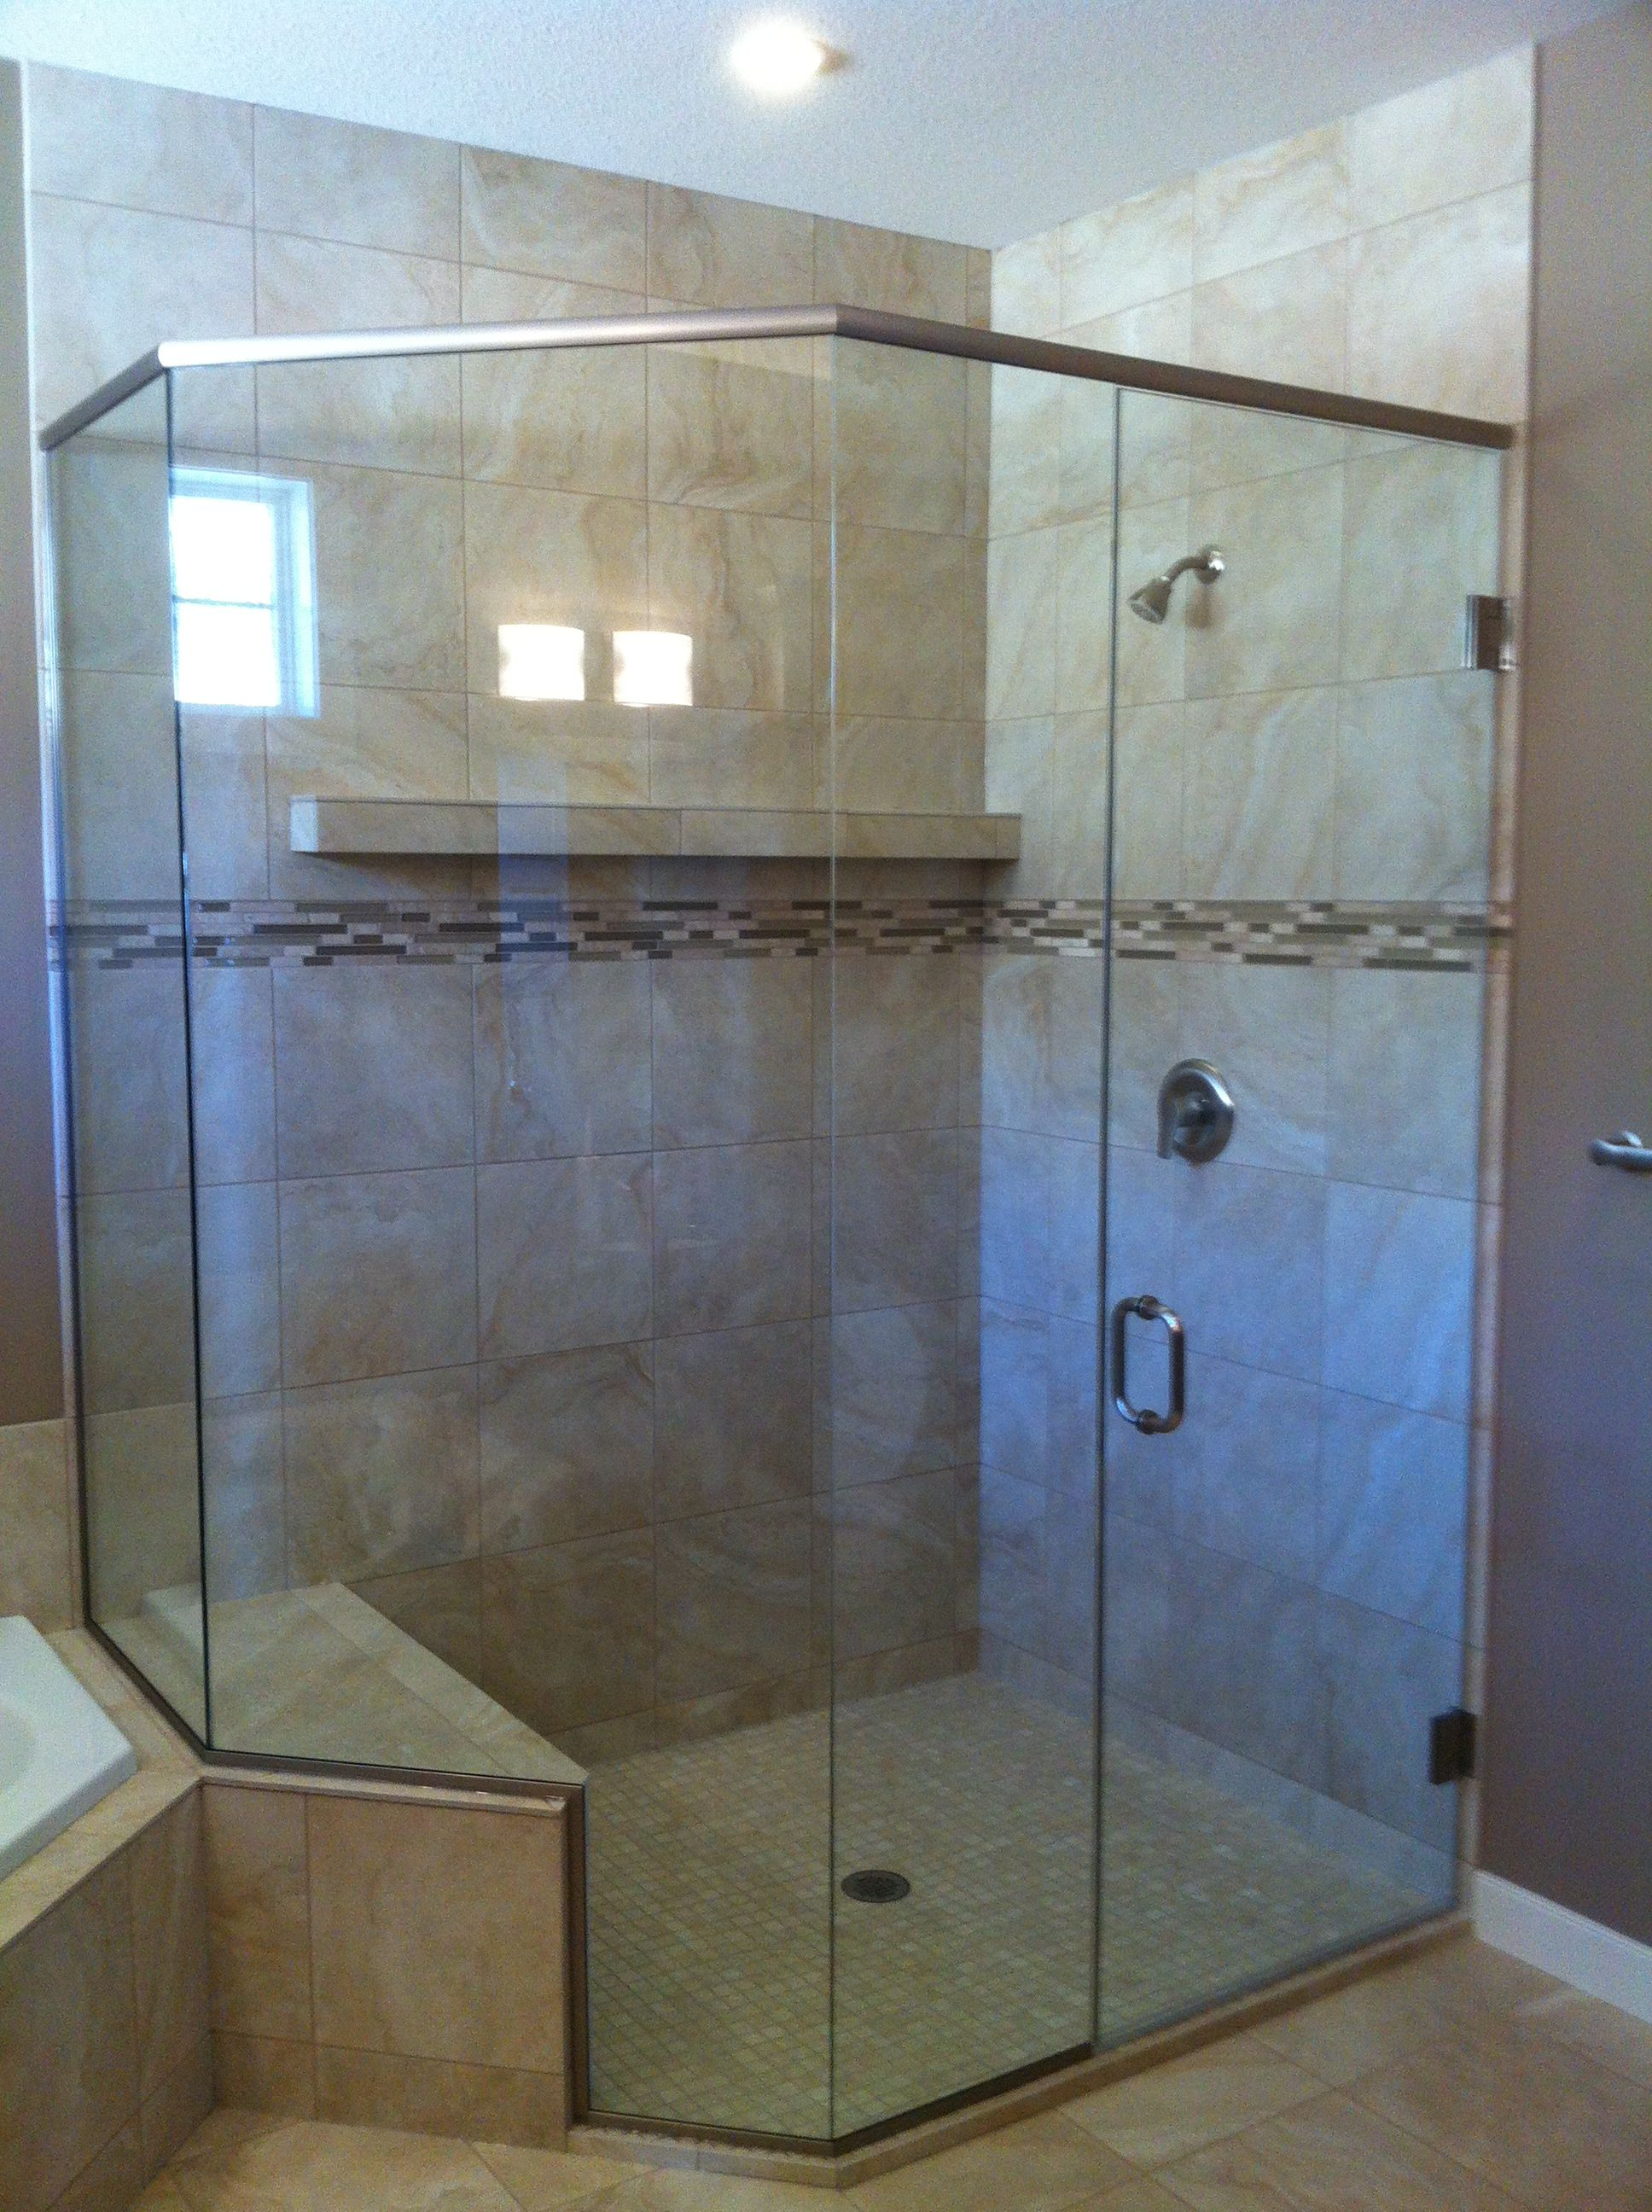 Neoangle shower enclosure with bench Full header wall ...